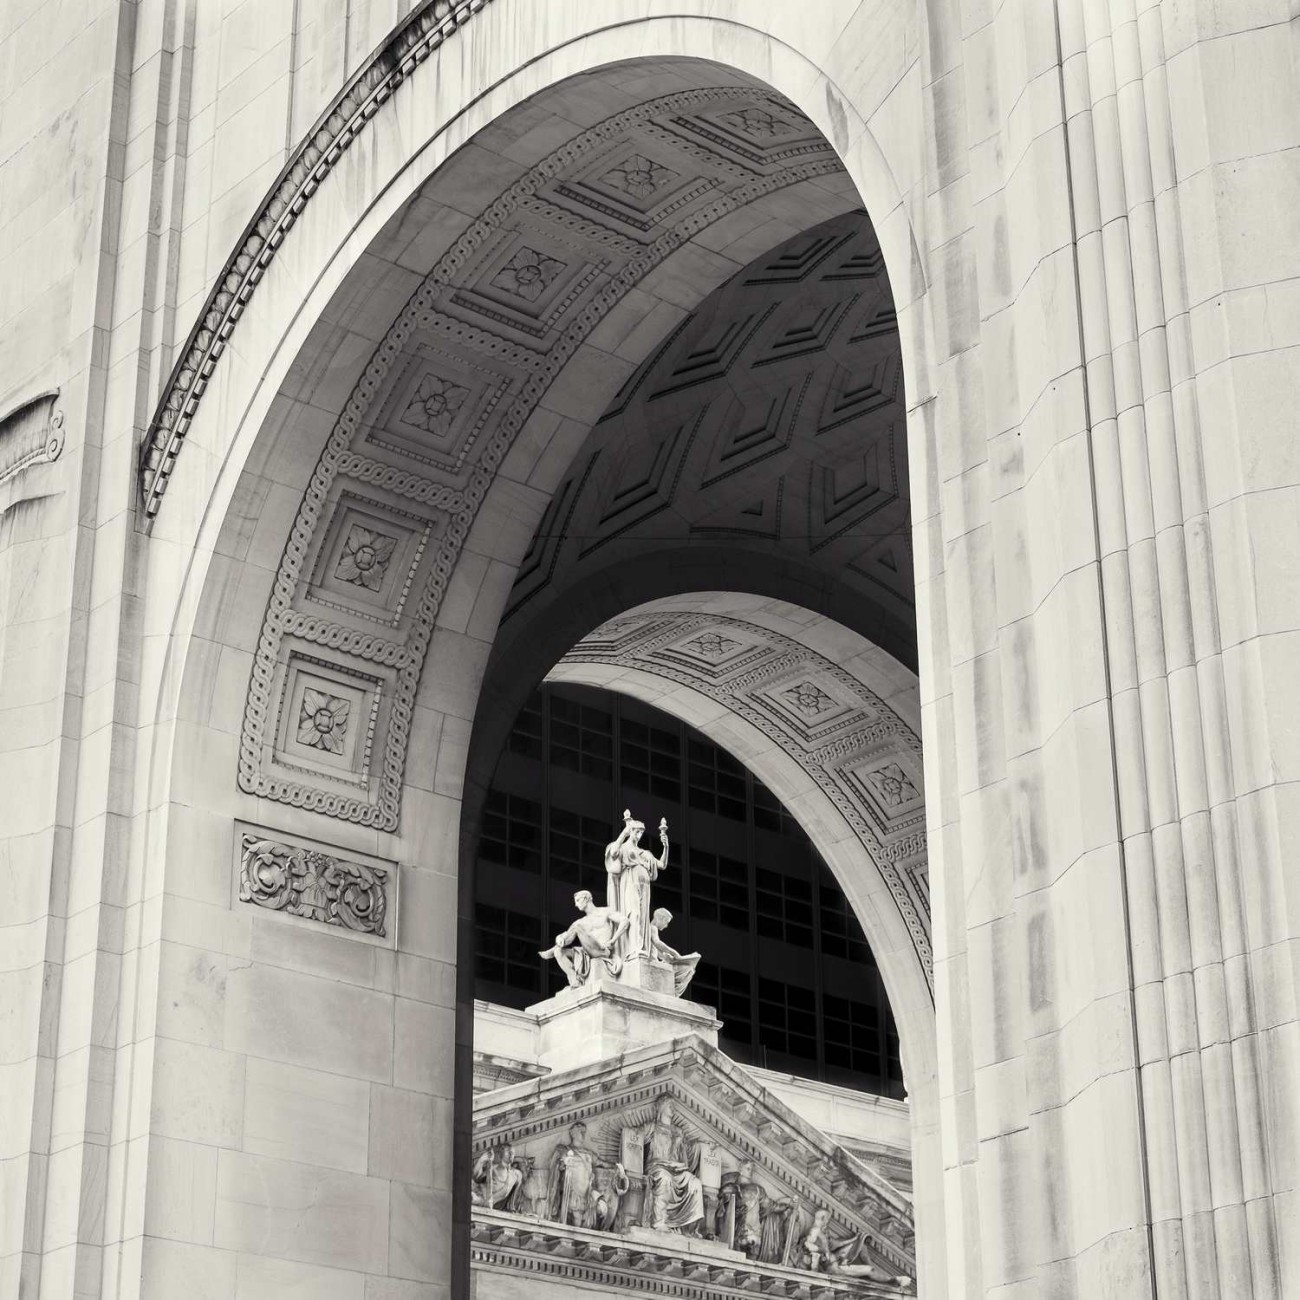 Courthouse pediment and arches, New York, 2014